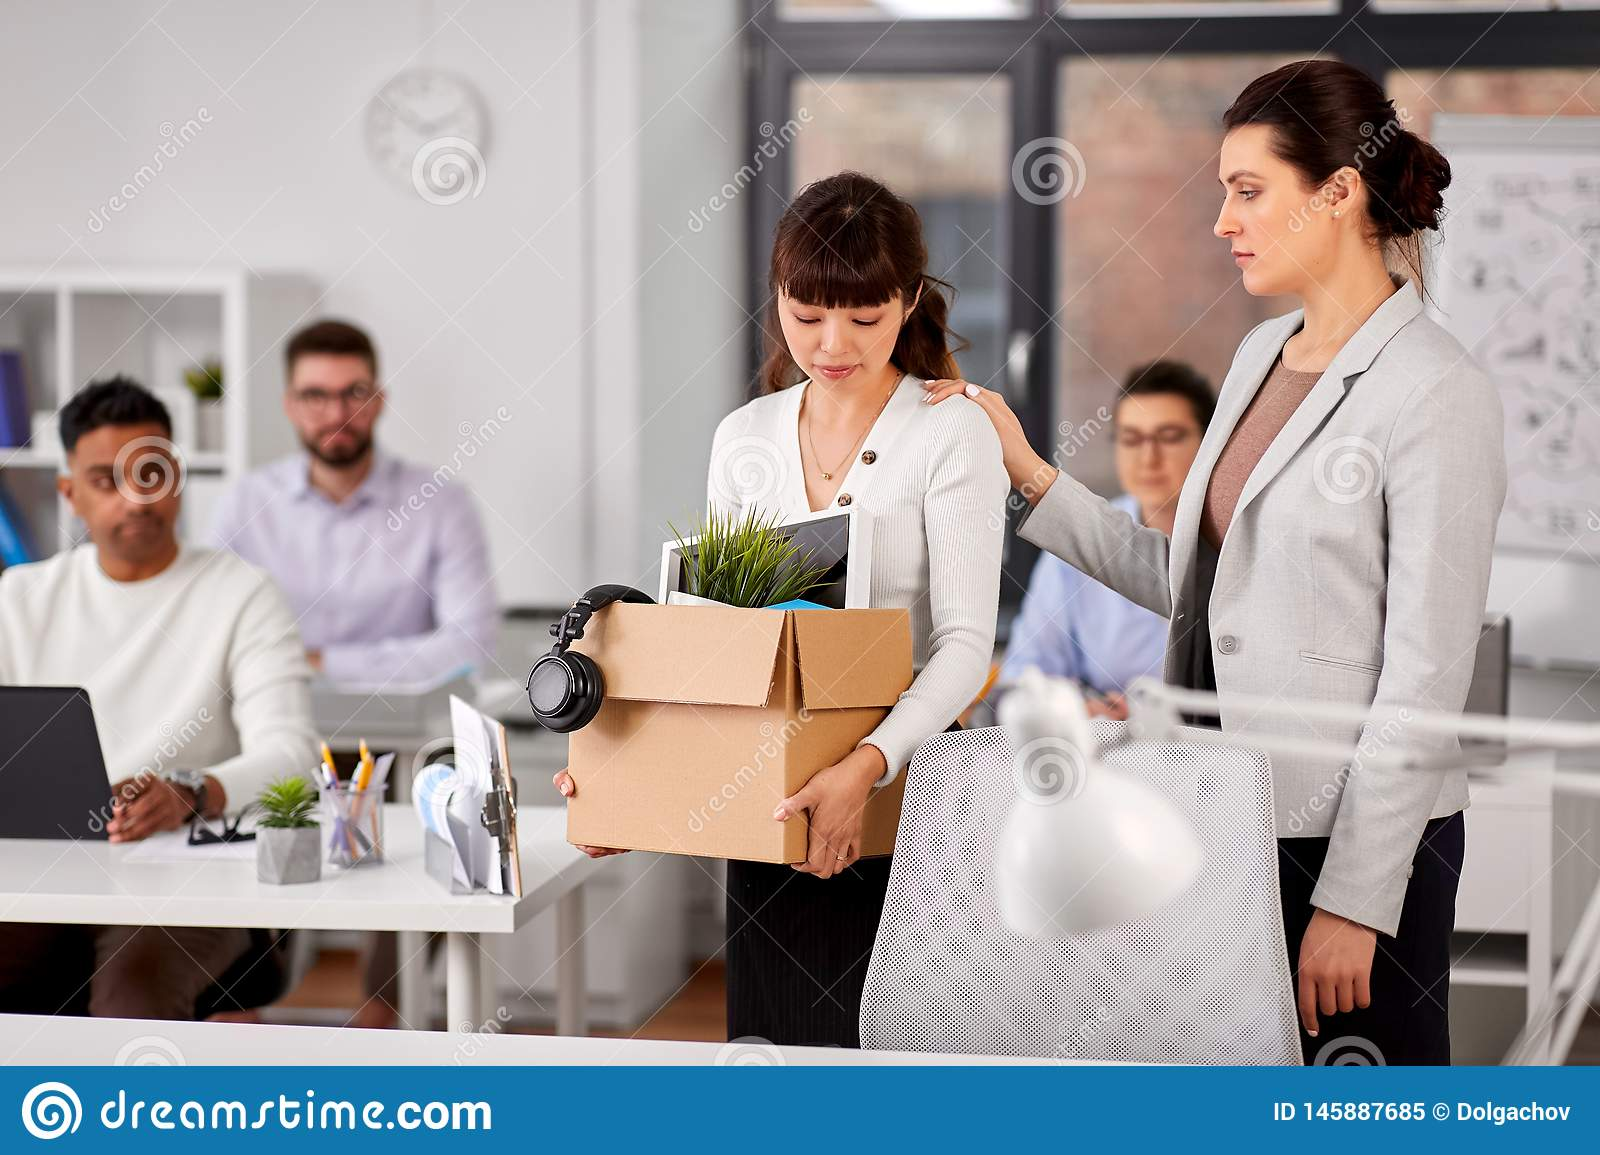 Colleague seeing off fired employee leaving office